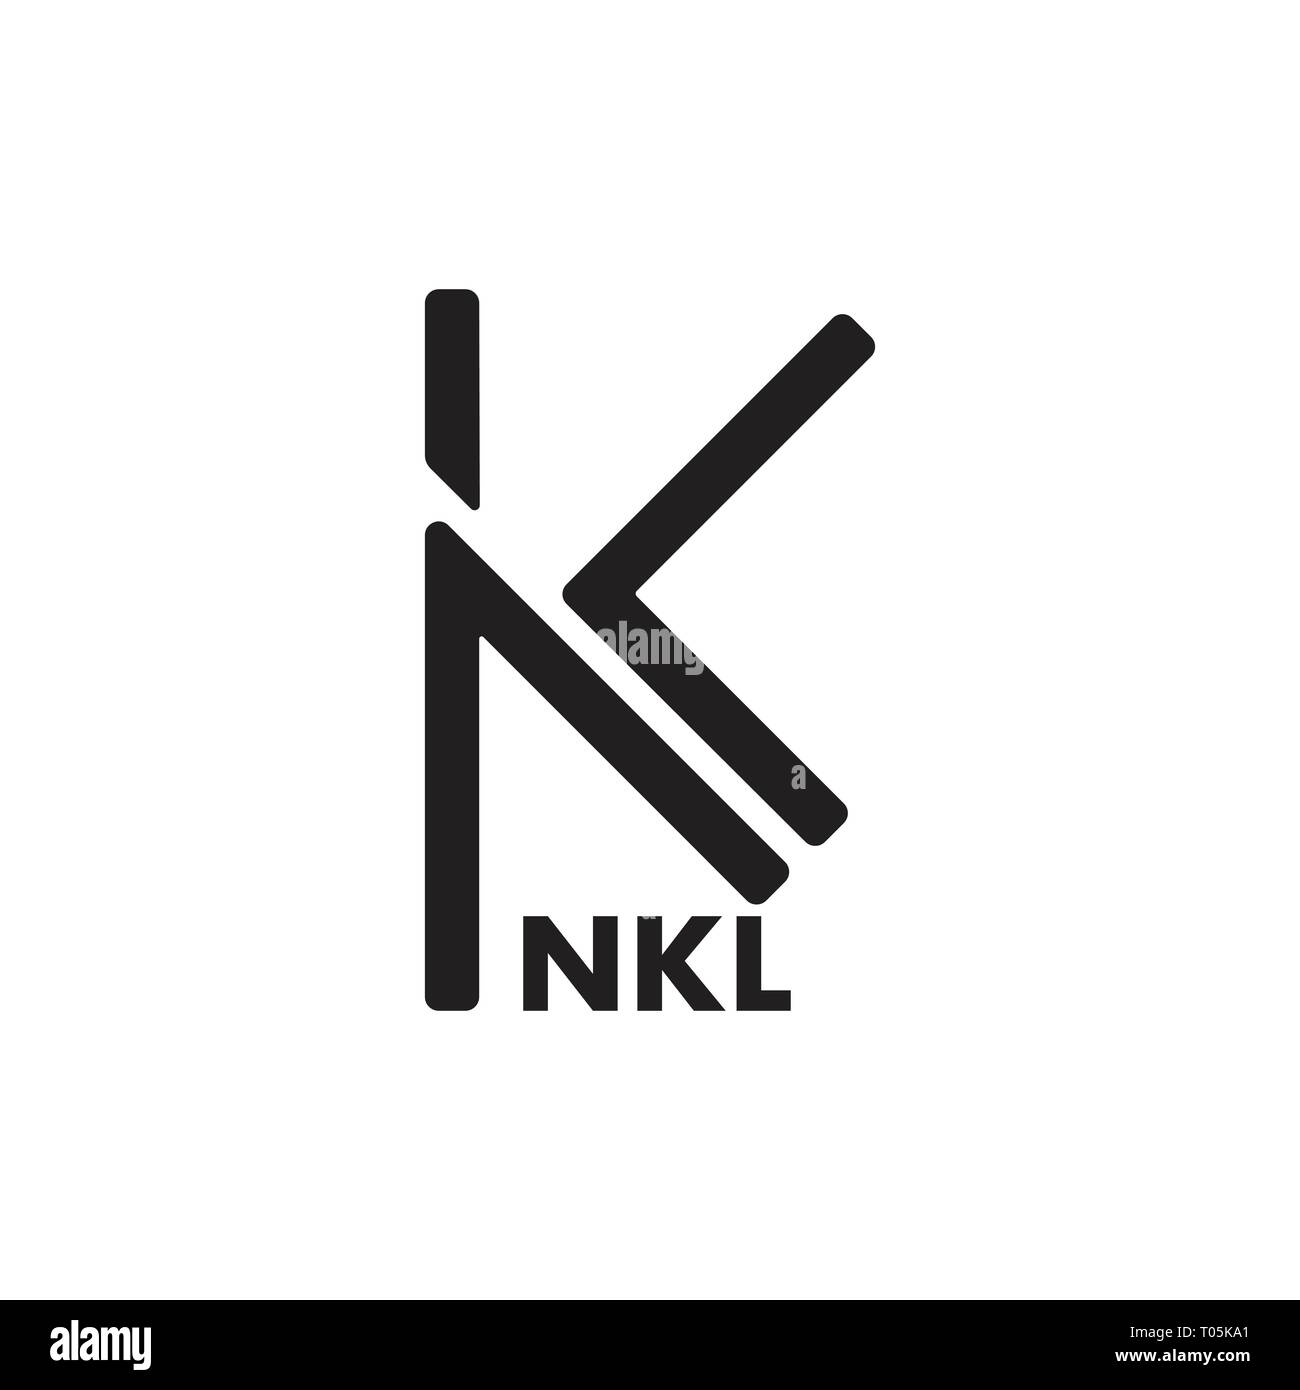 letters kl simple line logo vector - Stock Vector